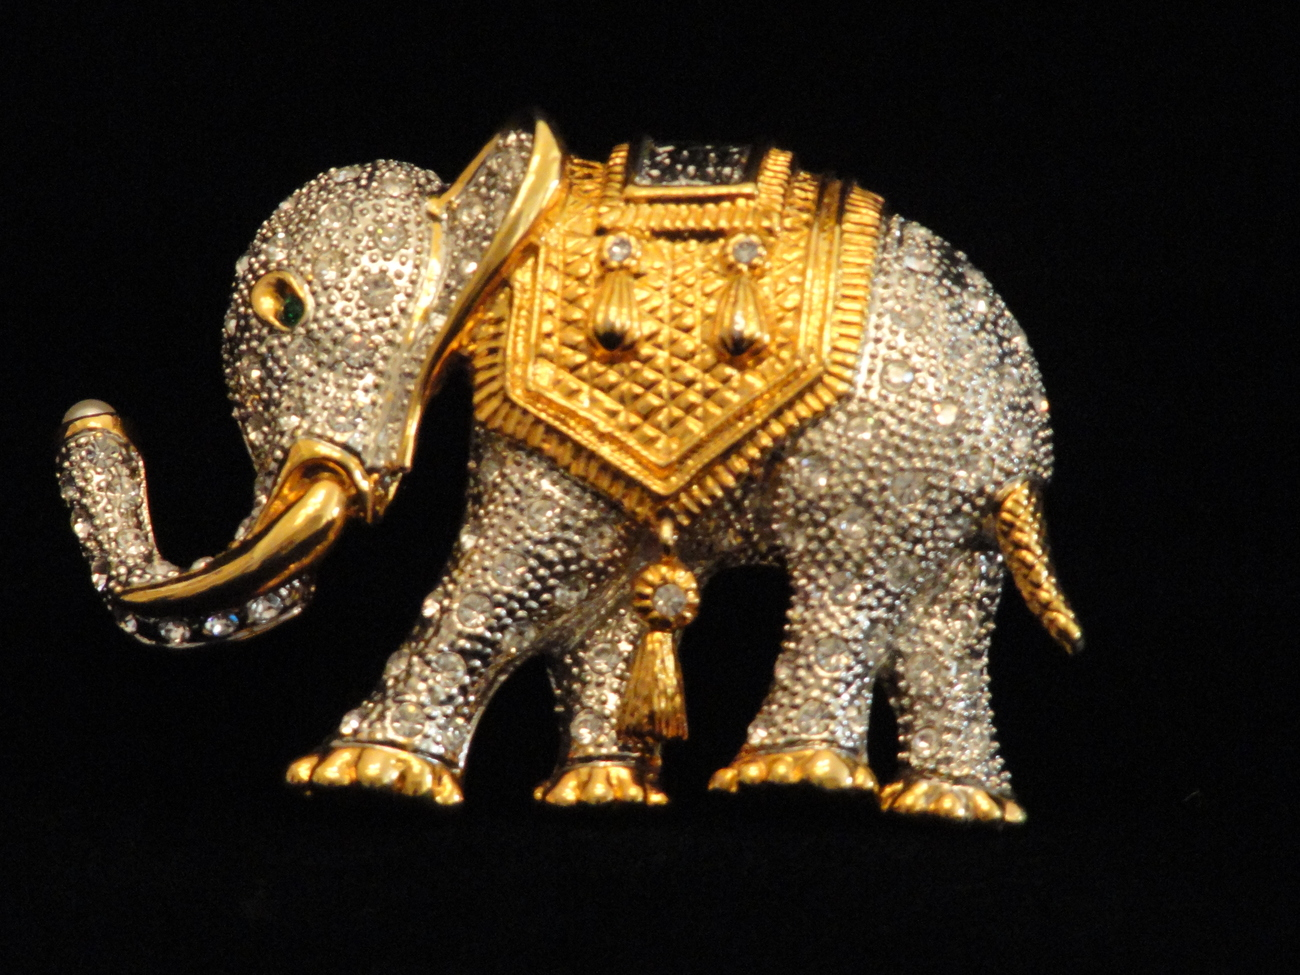 Lgelephantbrooch